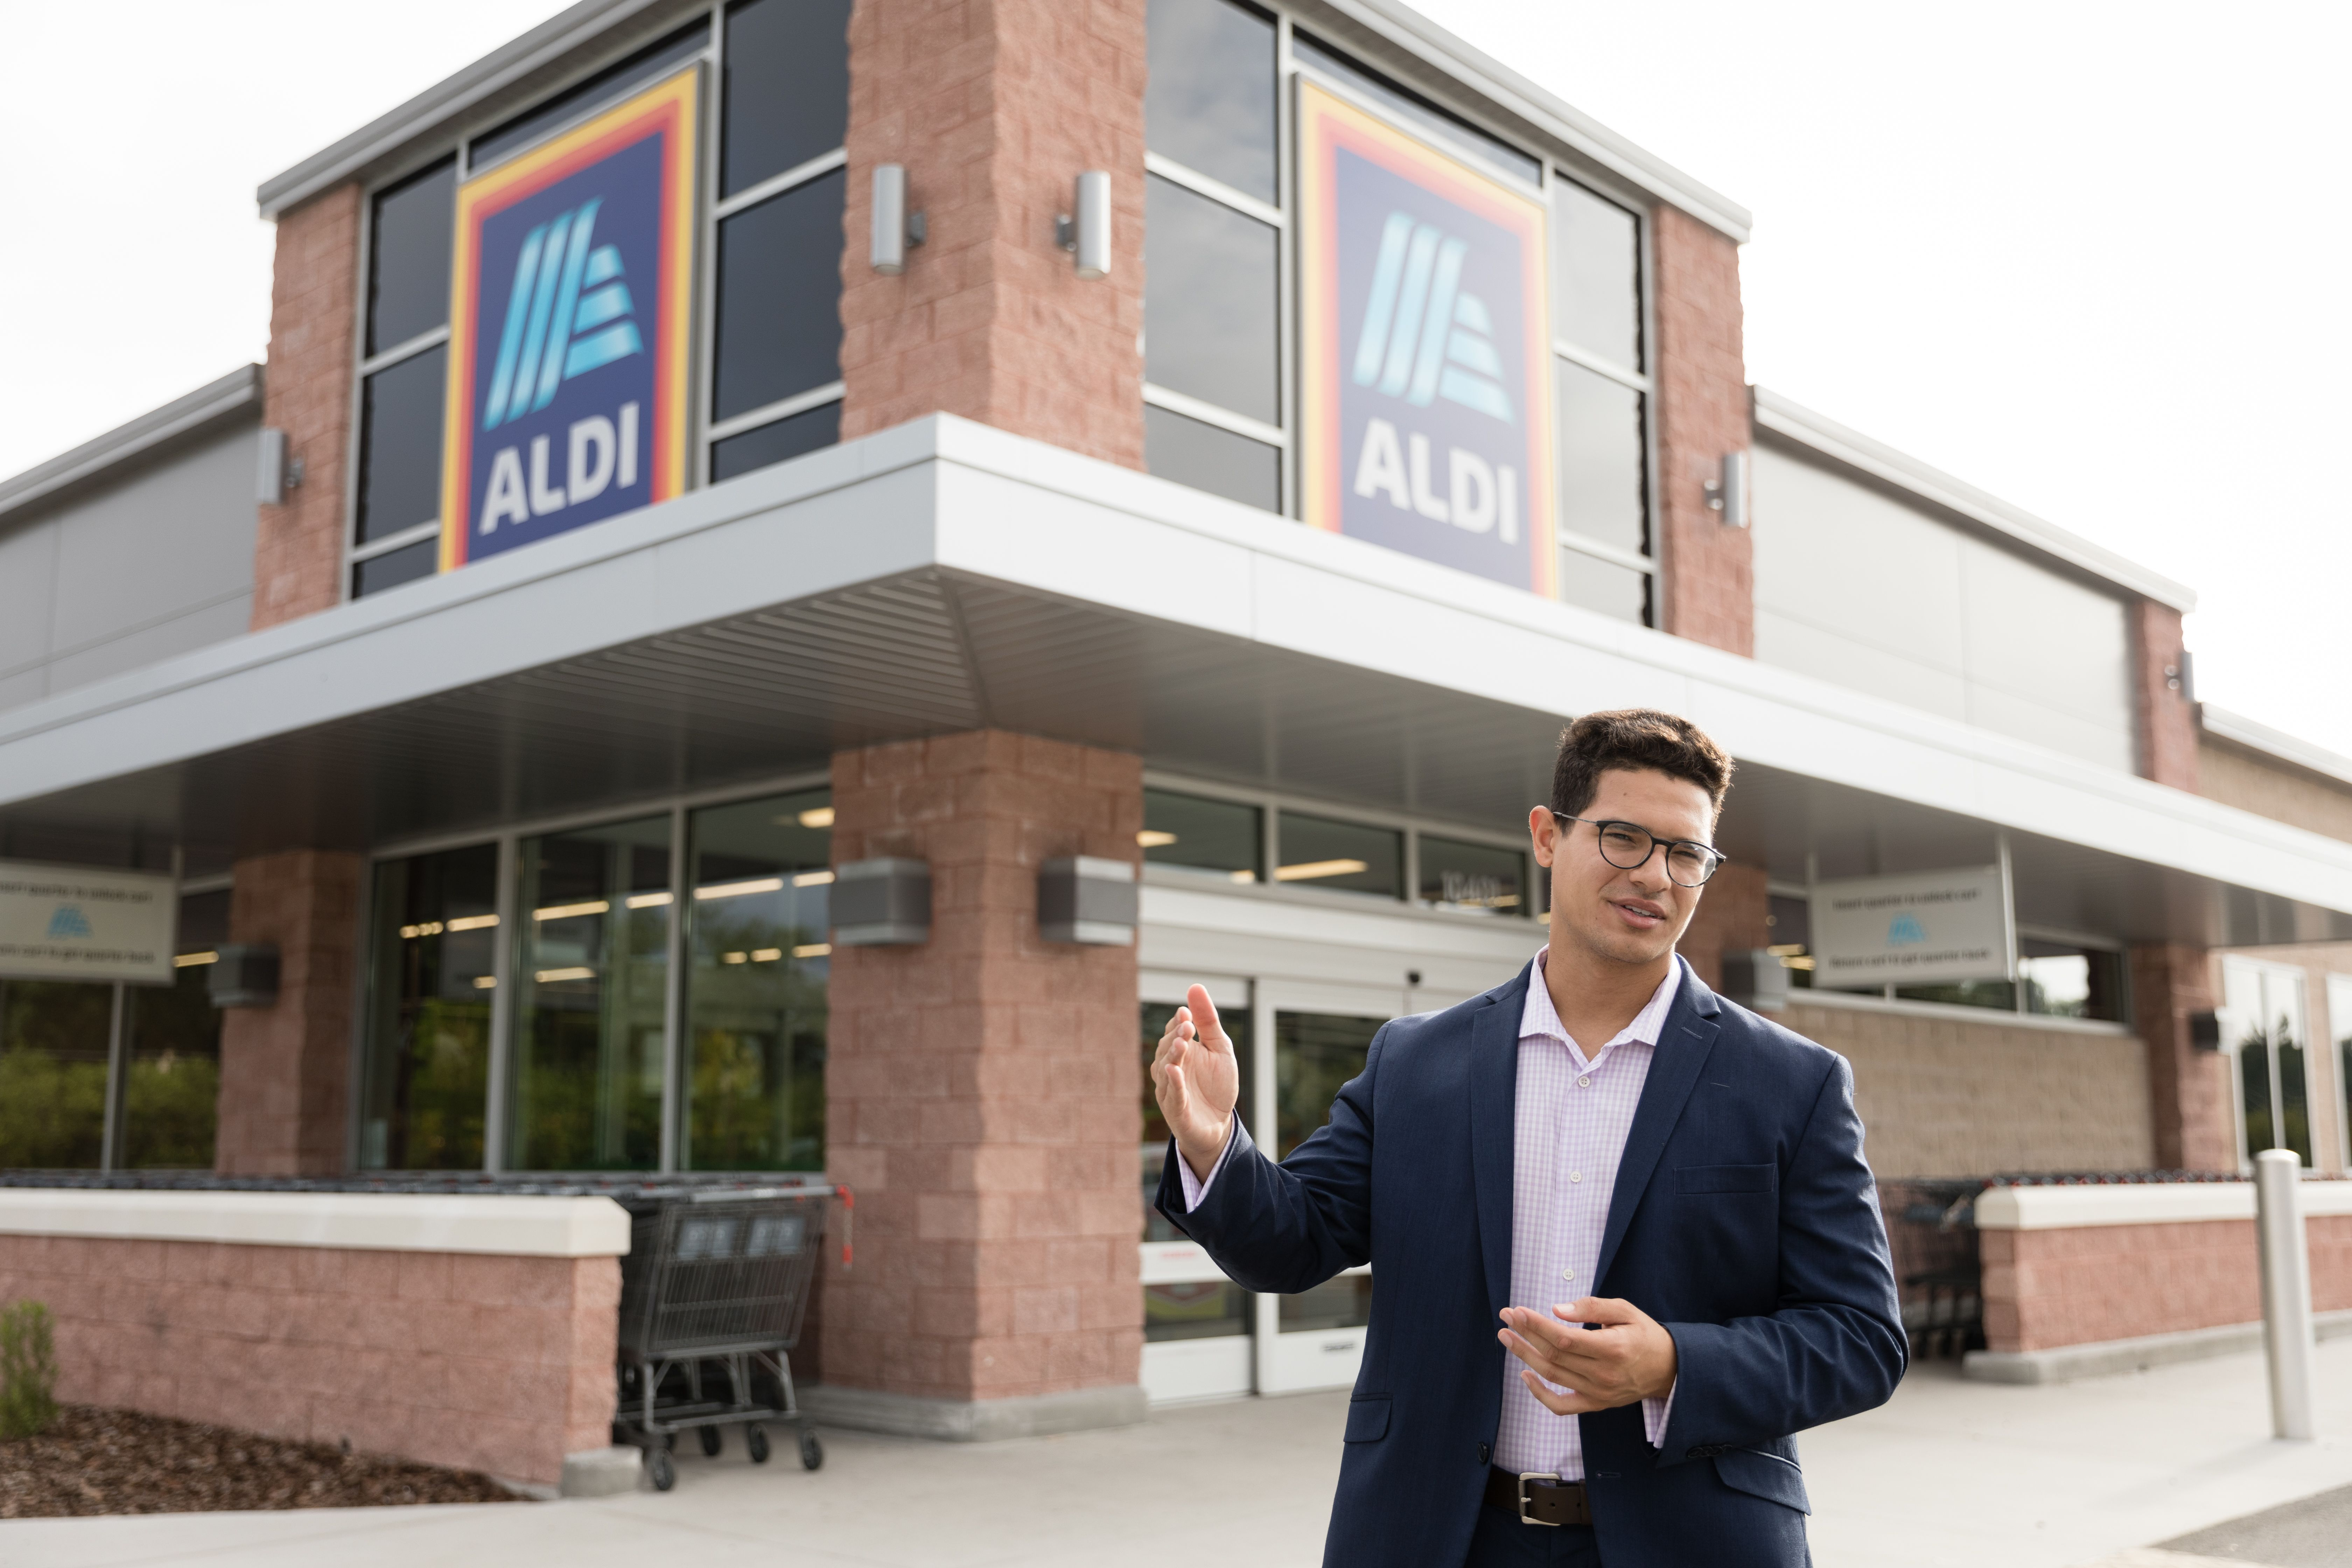 Management intern poses outside an ALDI store in Florida.